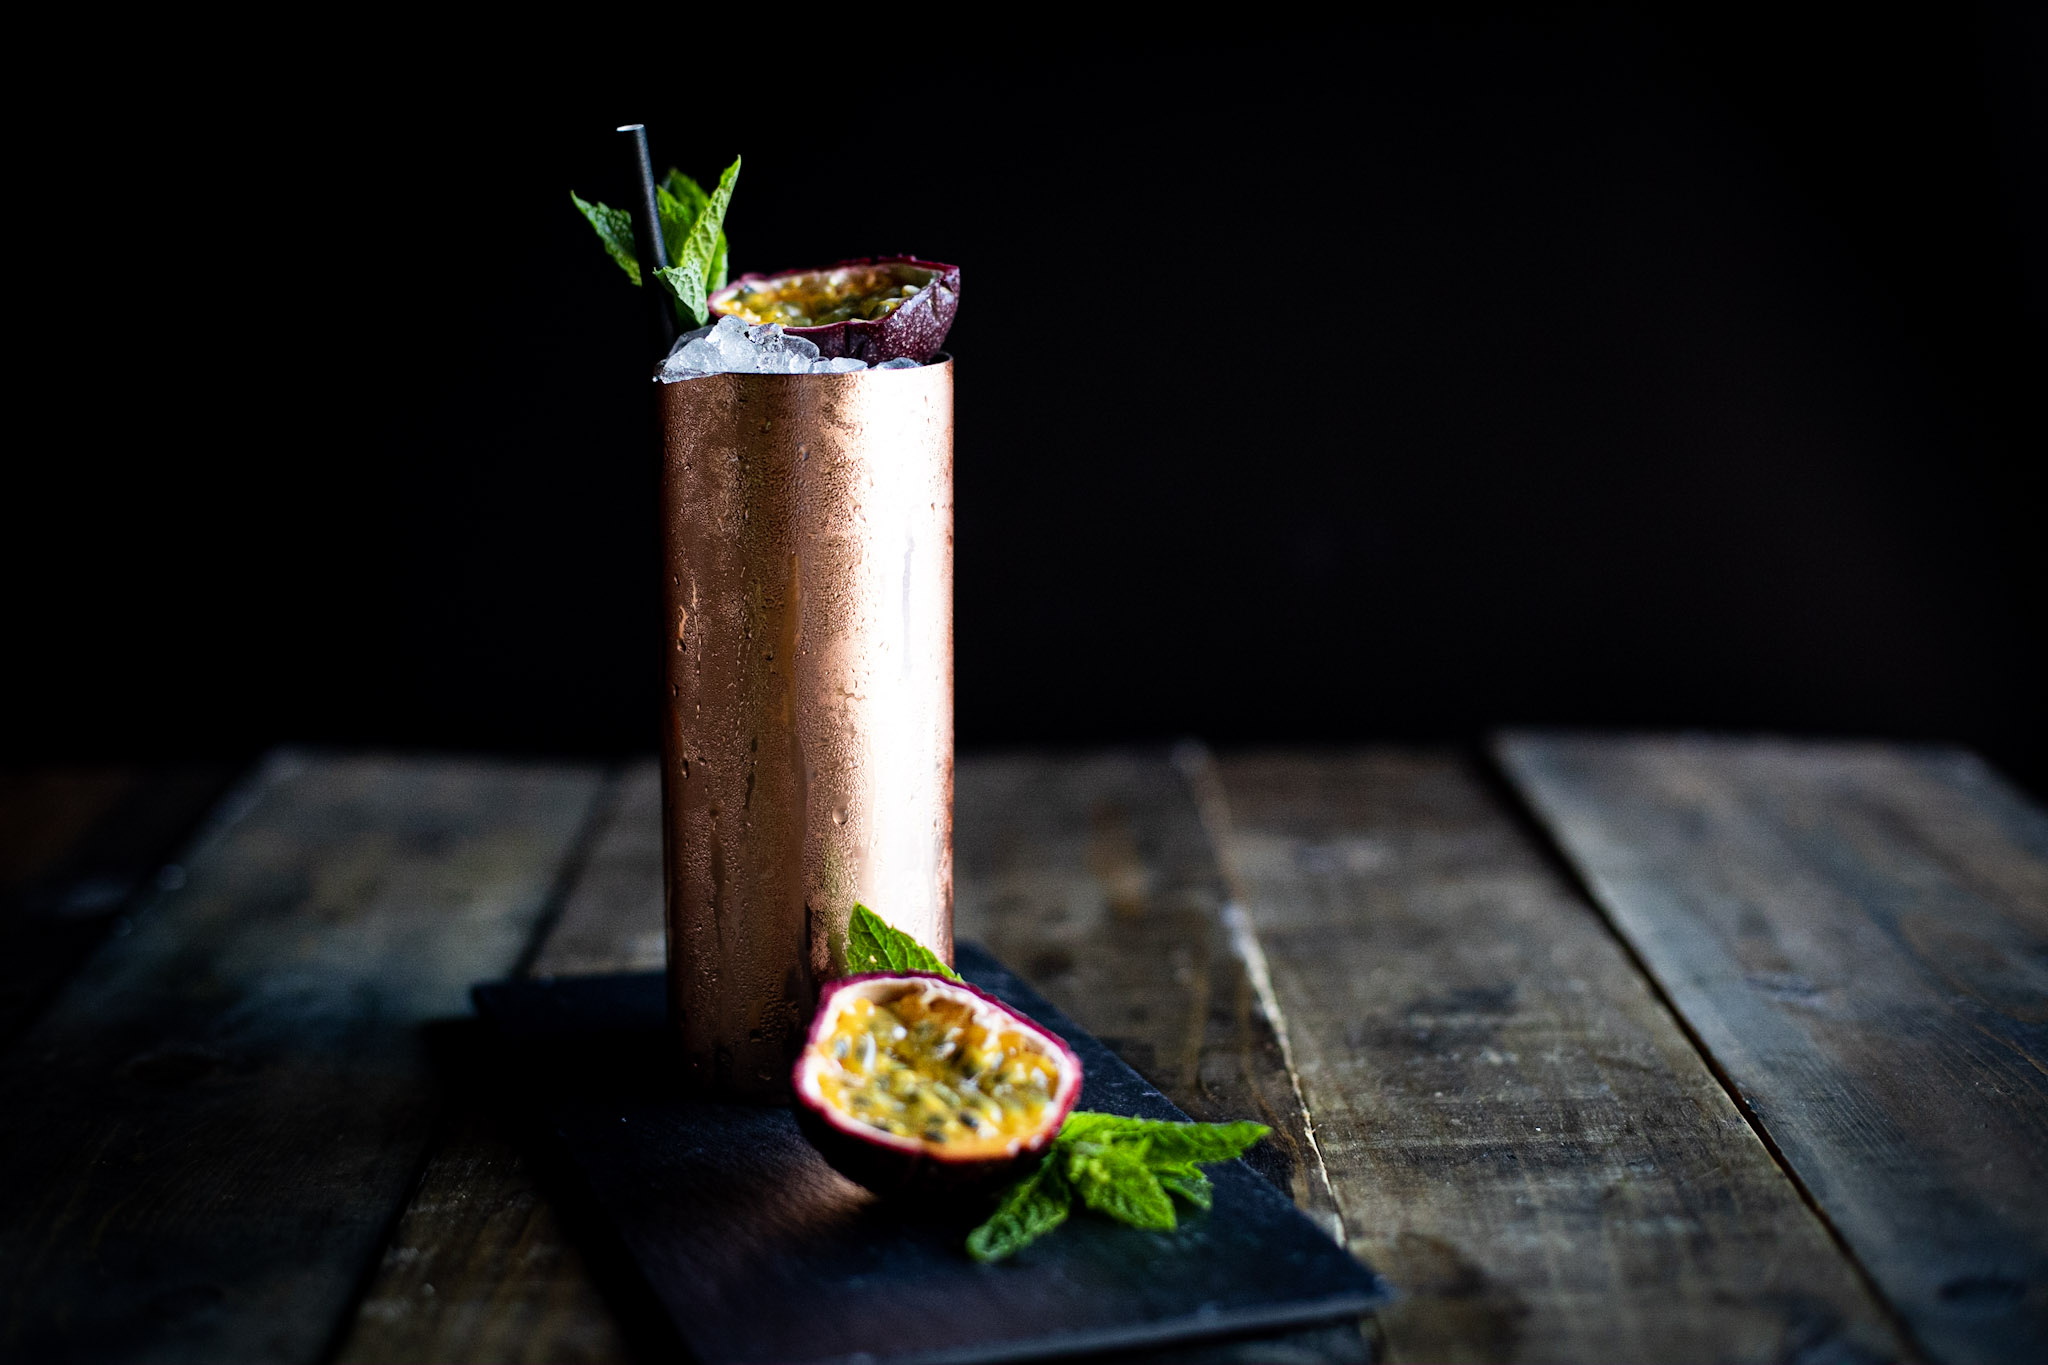 Our striking copper concoction